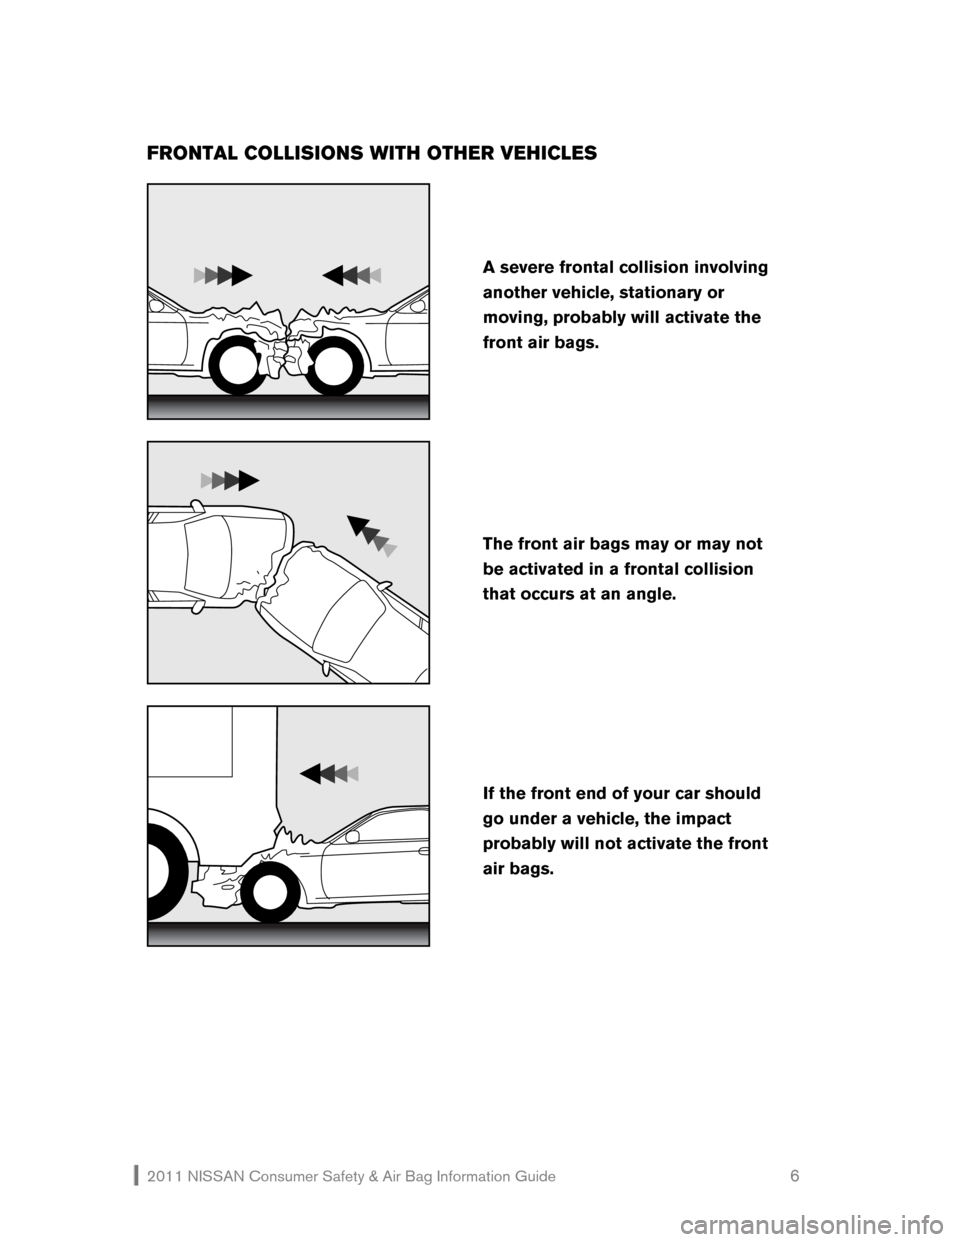 NISSAN VERSA 2011 1.G Consumer Safety Air Bag Information Guide, Page 7